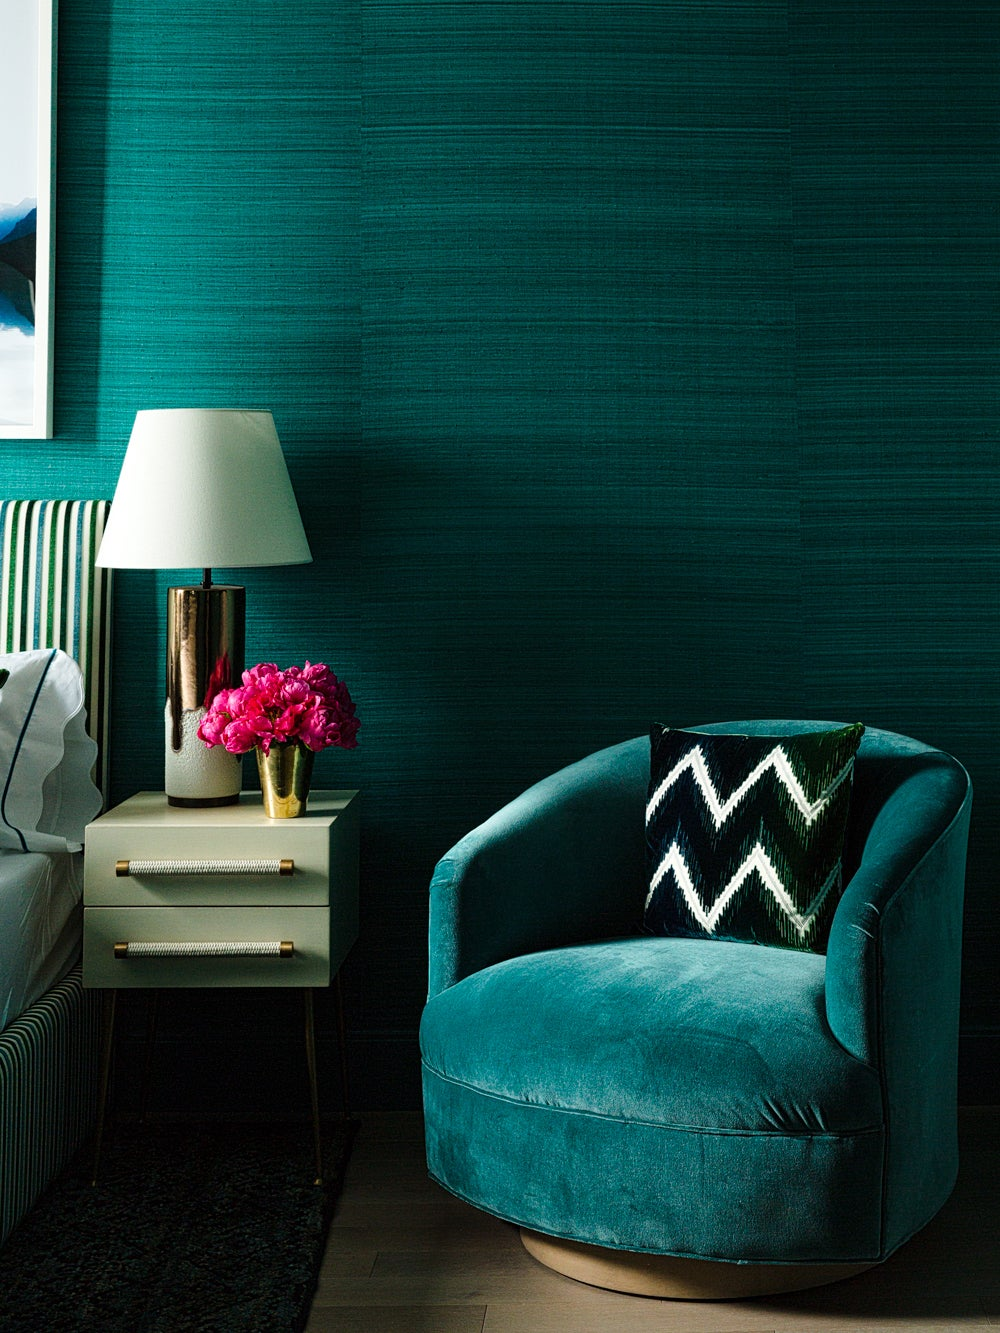 6 Paint Ideas for Your Home, Based on Color Psychology